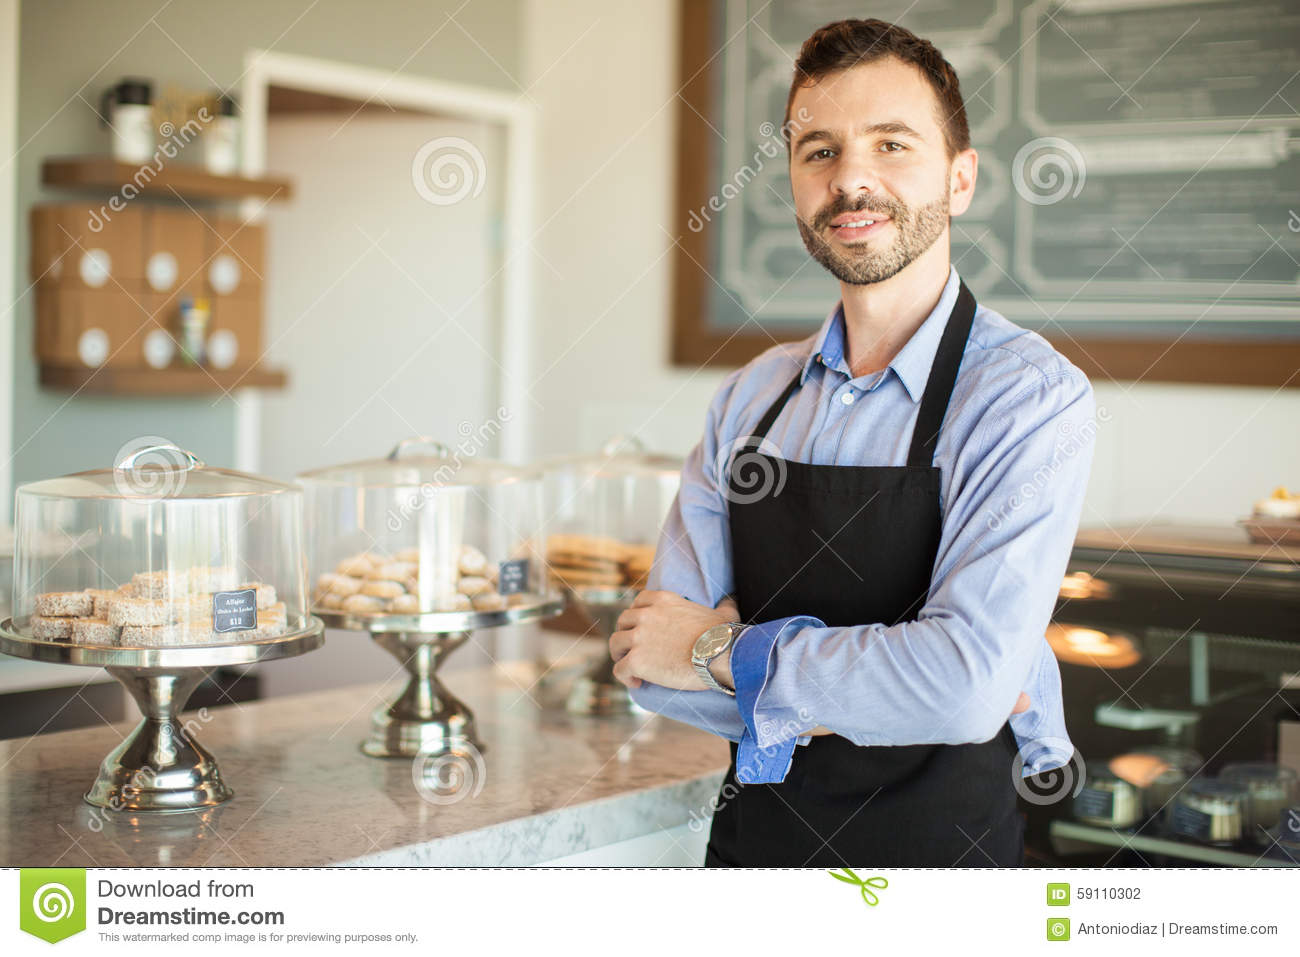 Male Business Owner In A Bakery Stock Photo - Image: 59110302